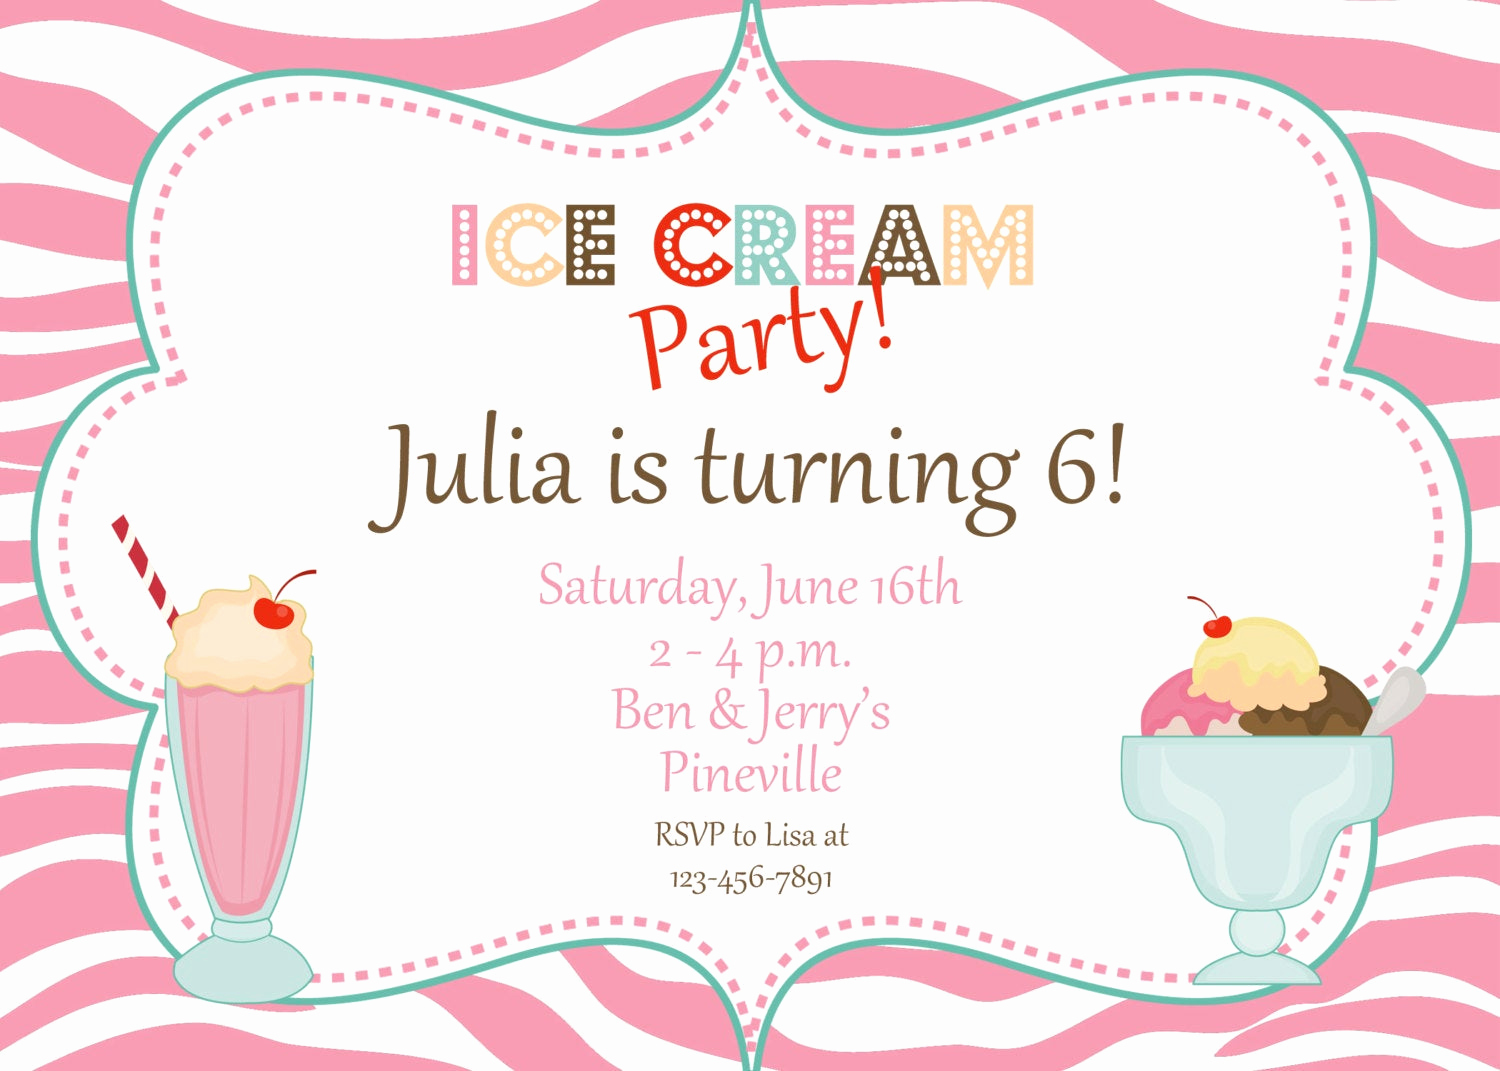 Ice Cream Party Invitation Unique Zebra Print Ice Cream Party Birthday by thebutterflypress